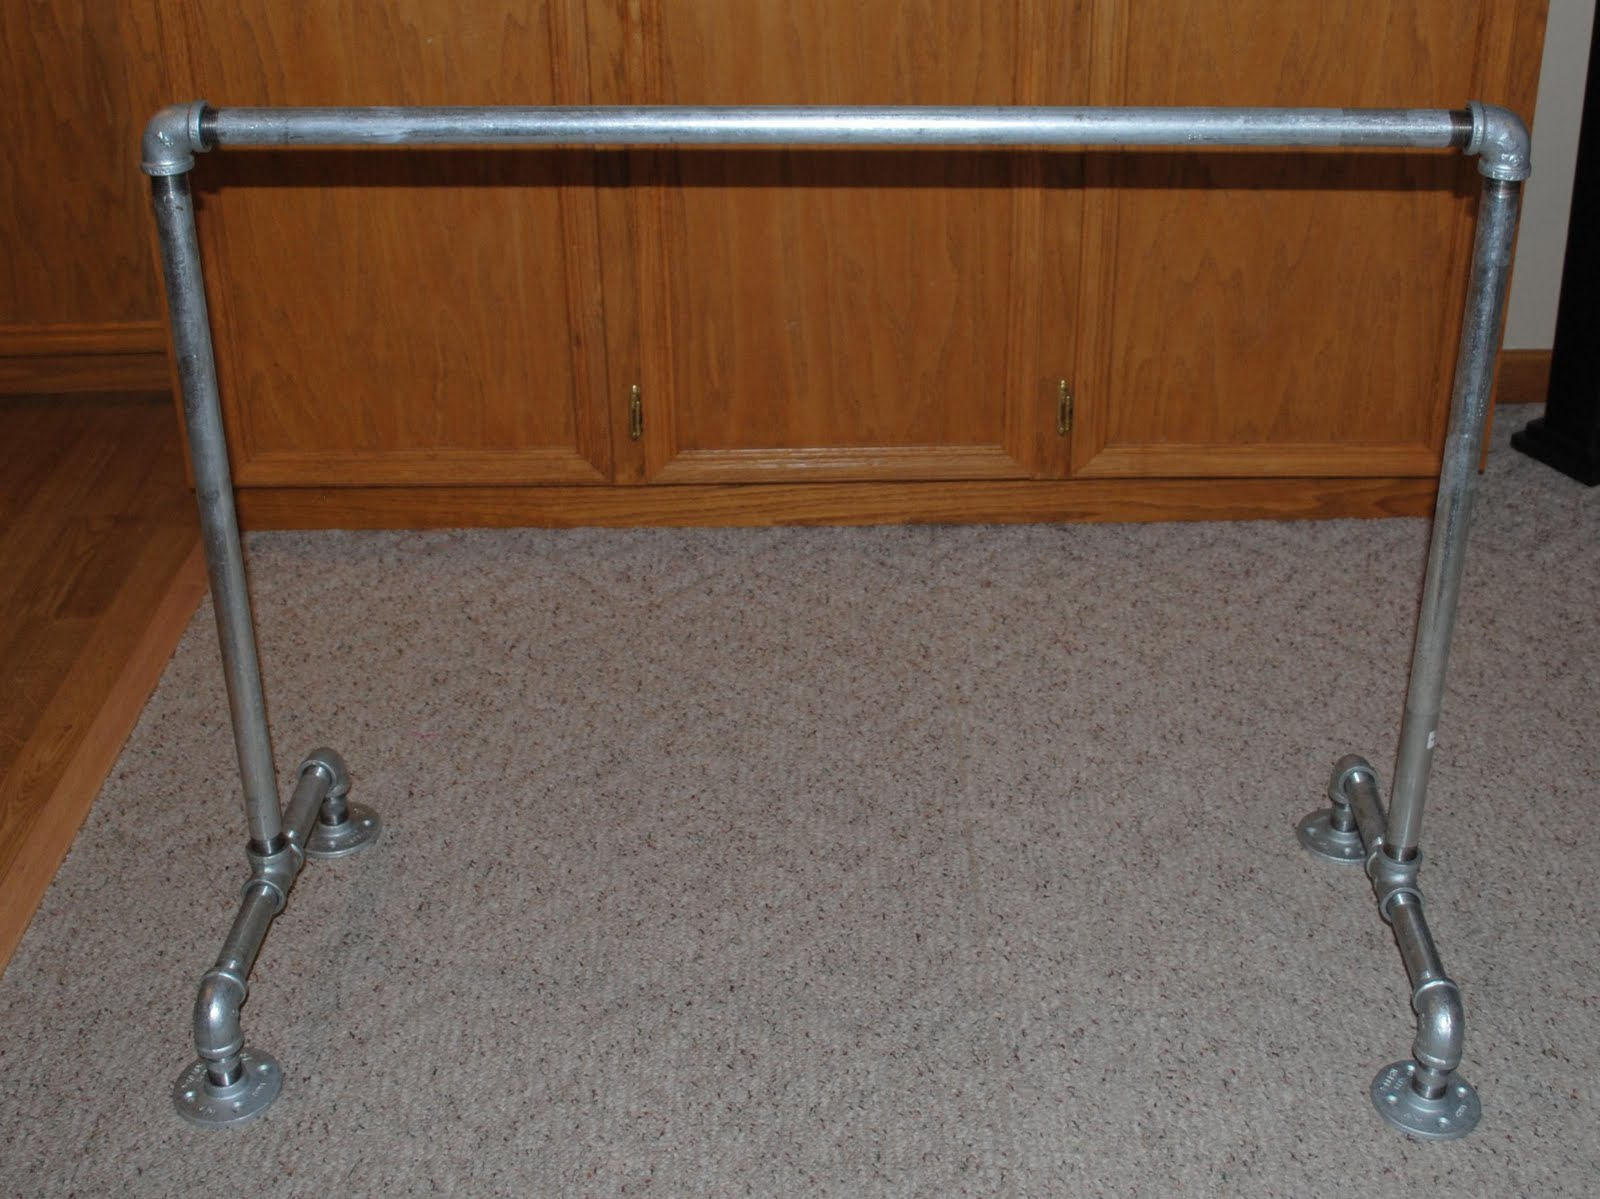 So here is the cheap alternative my husband made. It is working out perfect and is super solid. He just went to the local hardware store ... : pvc pipe ballet barre - www.happyfamilyinstitute.com